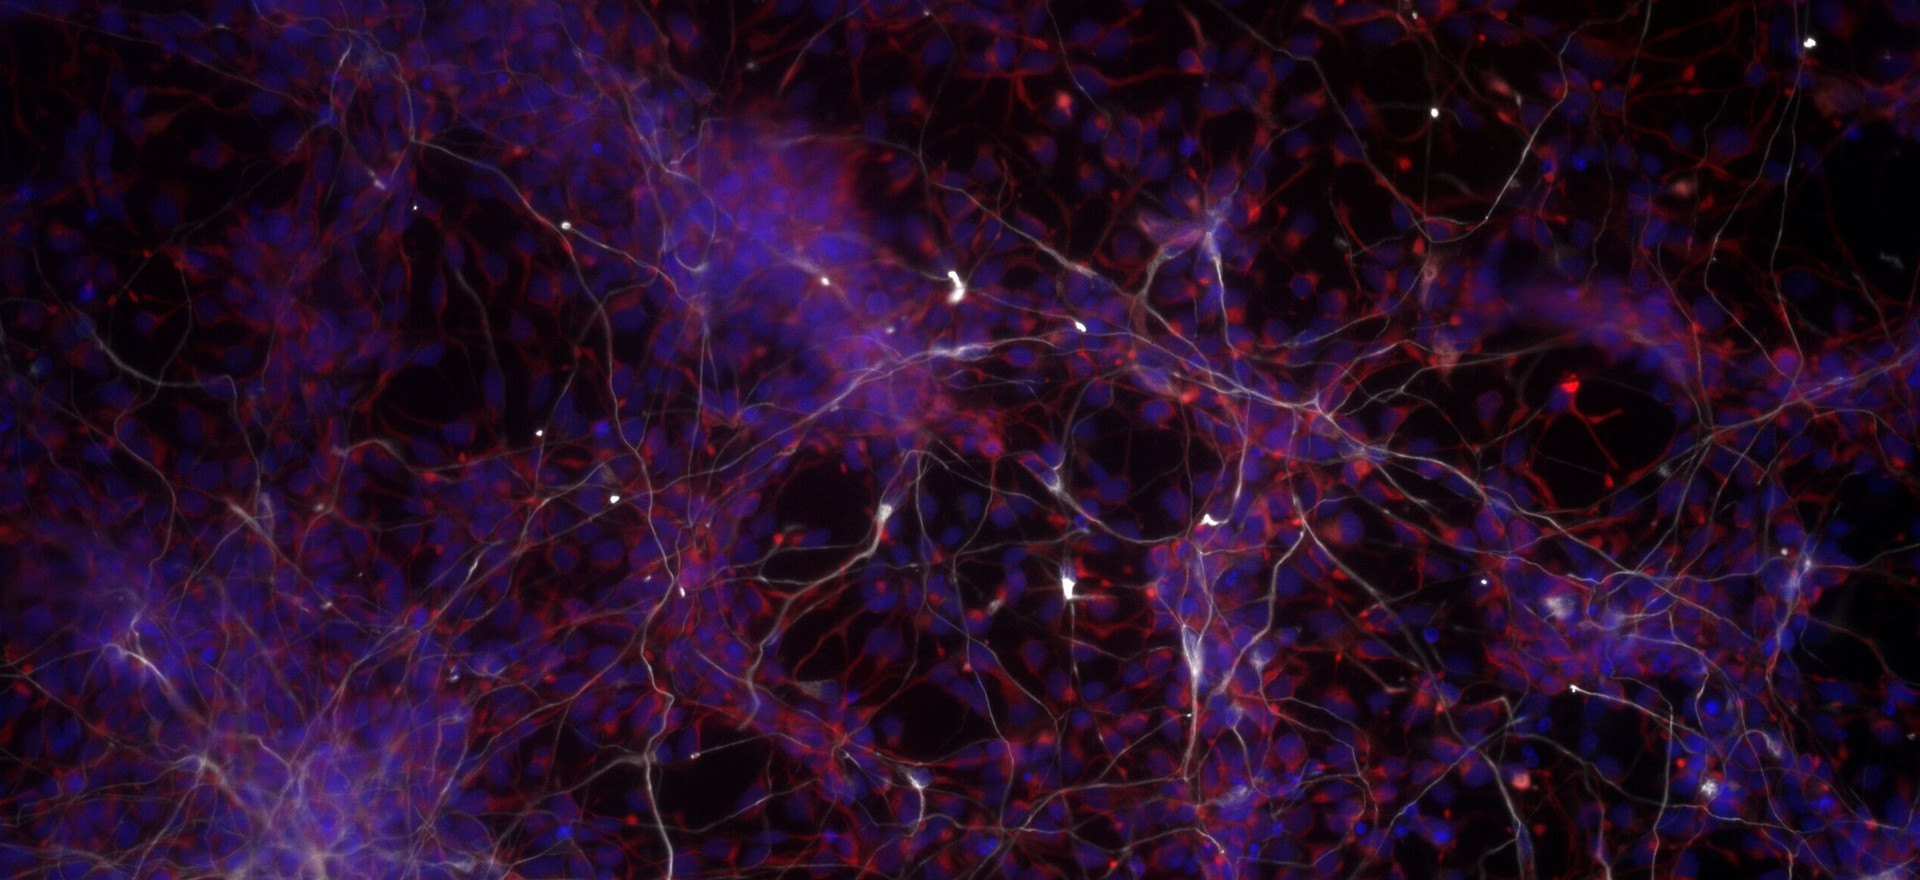 Stem Cells Becoming Neurons